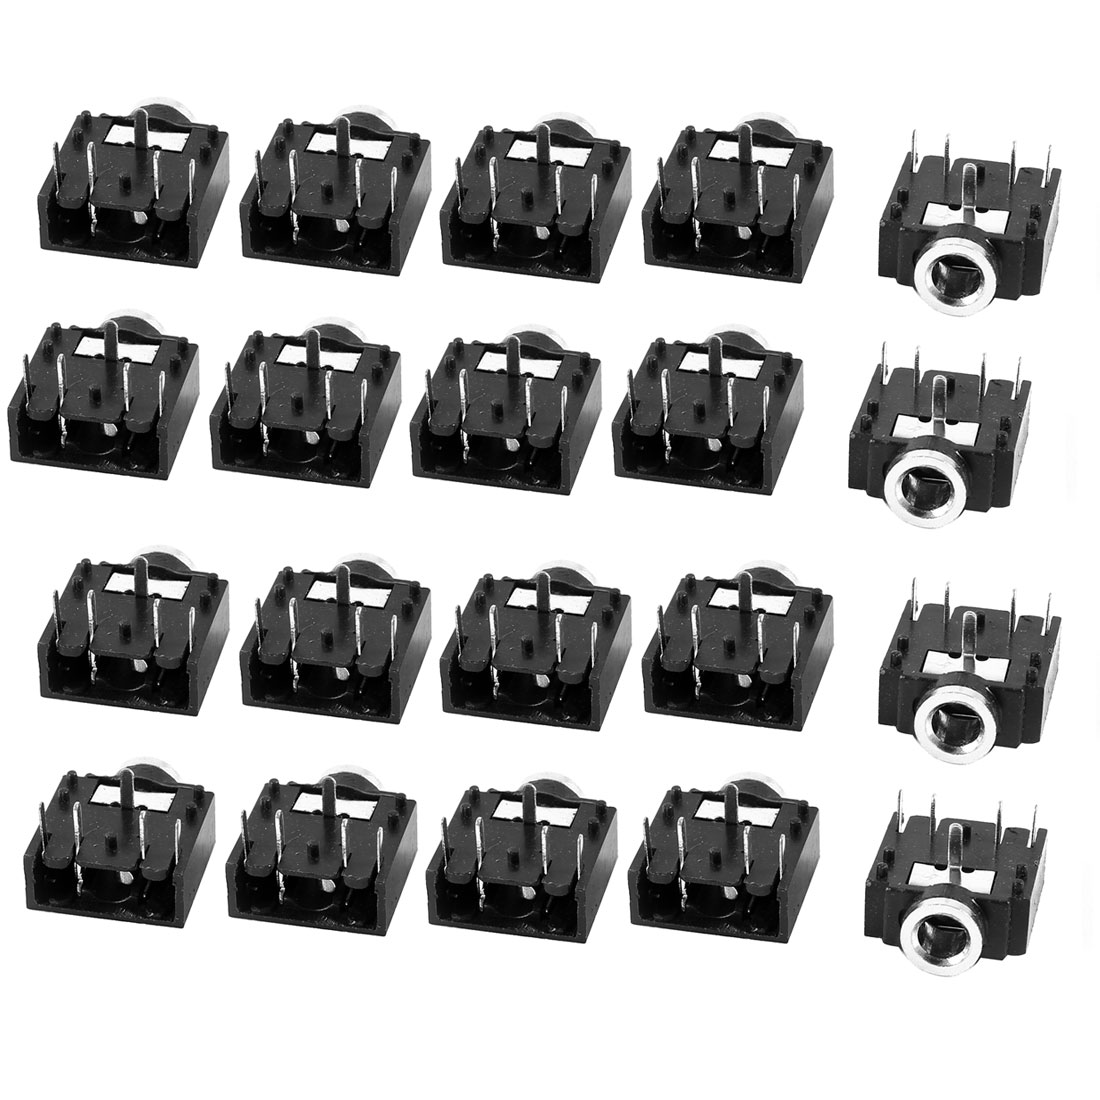 "20 Pcs 3.5mm 1/8"" Stereo Audio Socket Cell Phone Jack Connector 5-Pin PCB Mount"